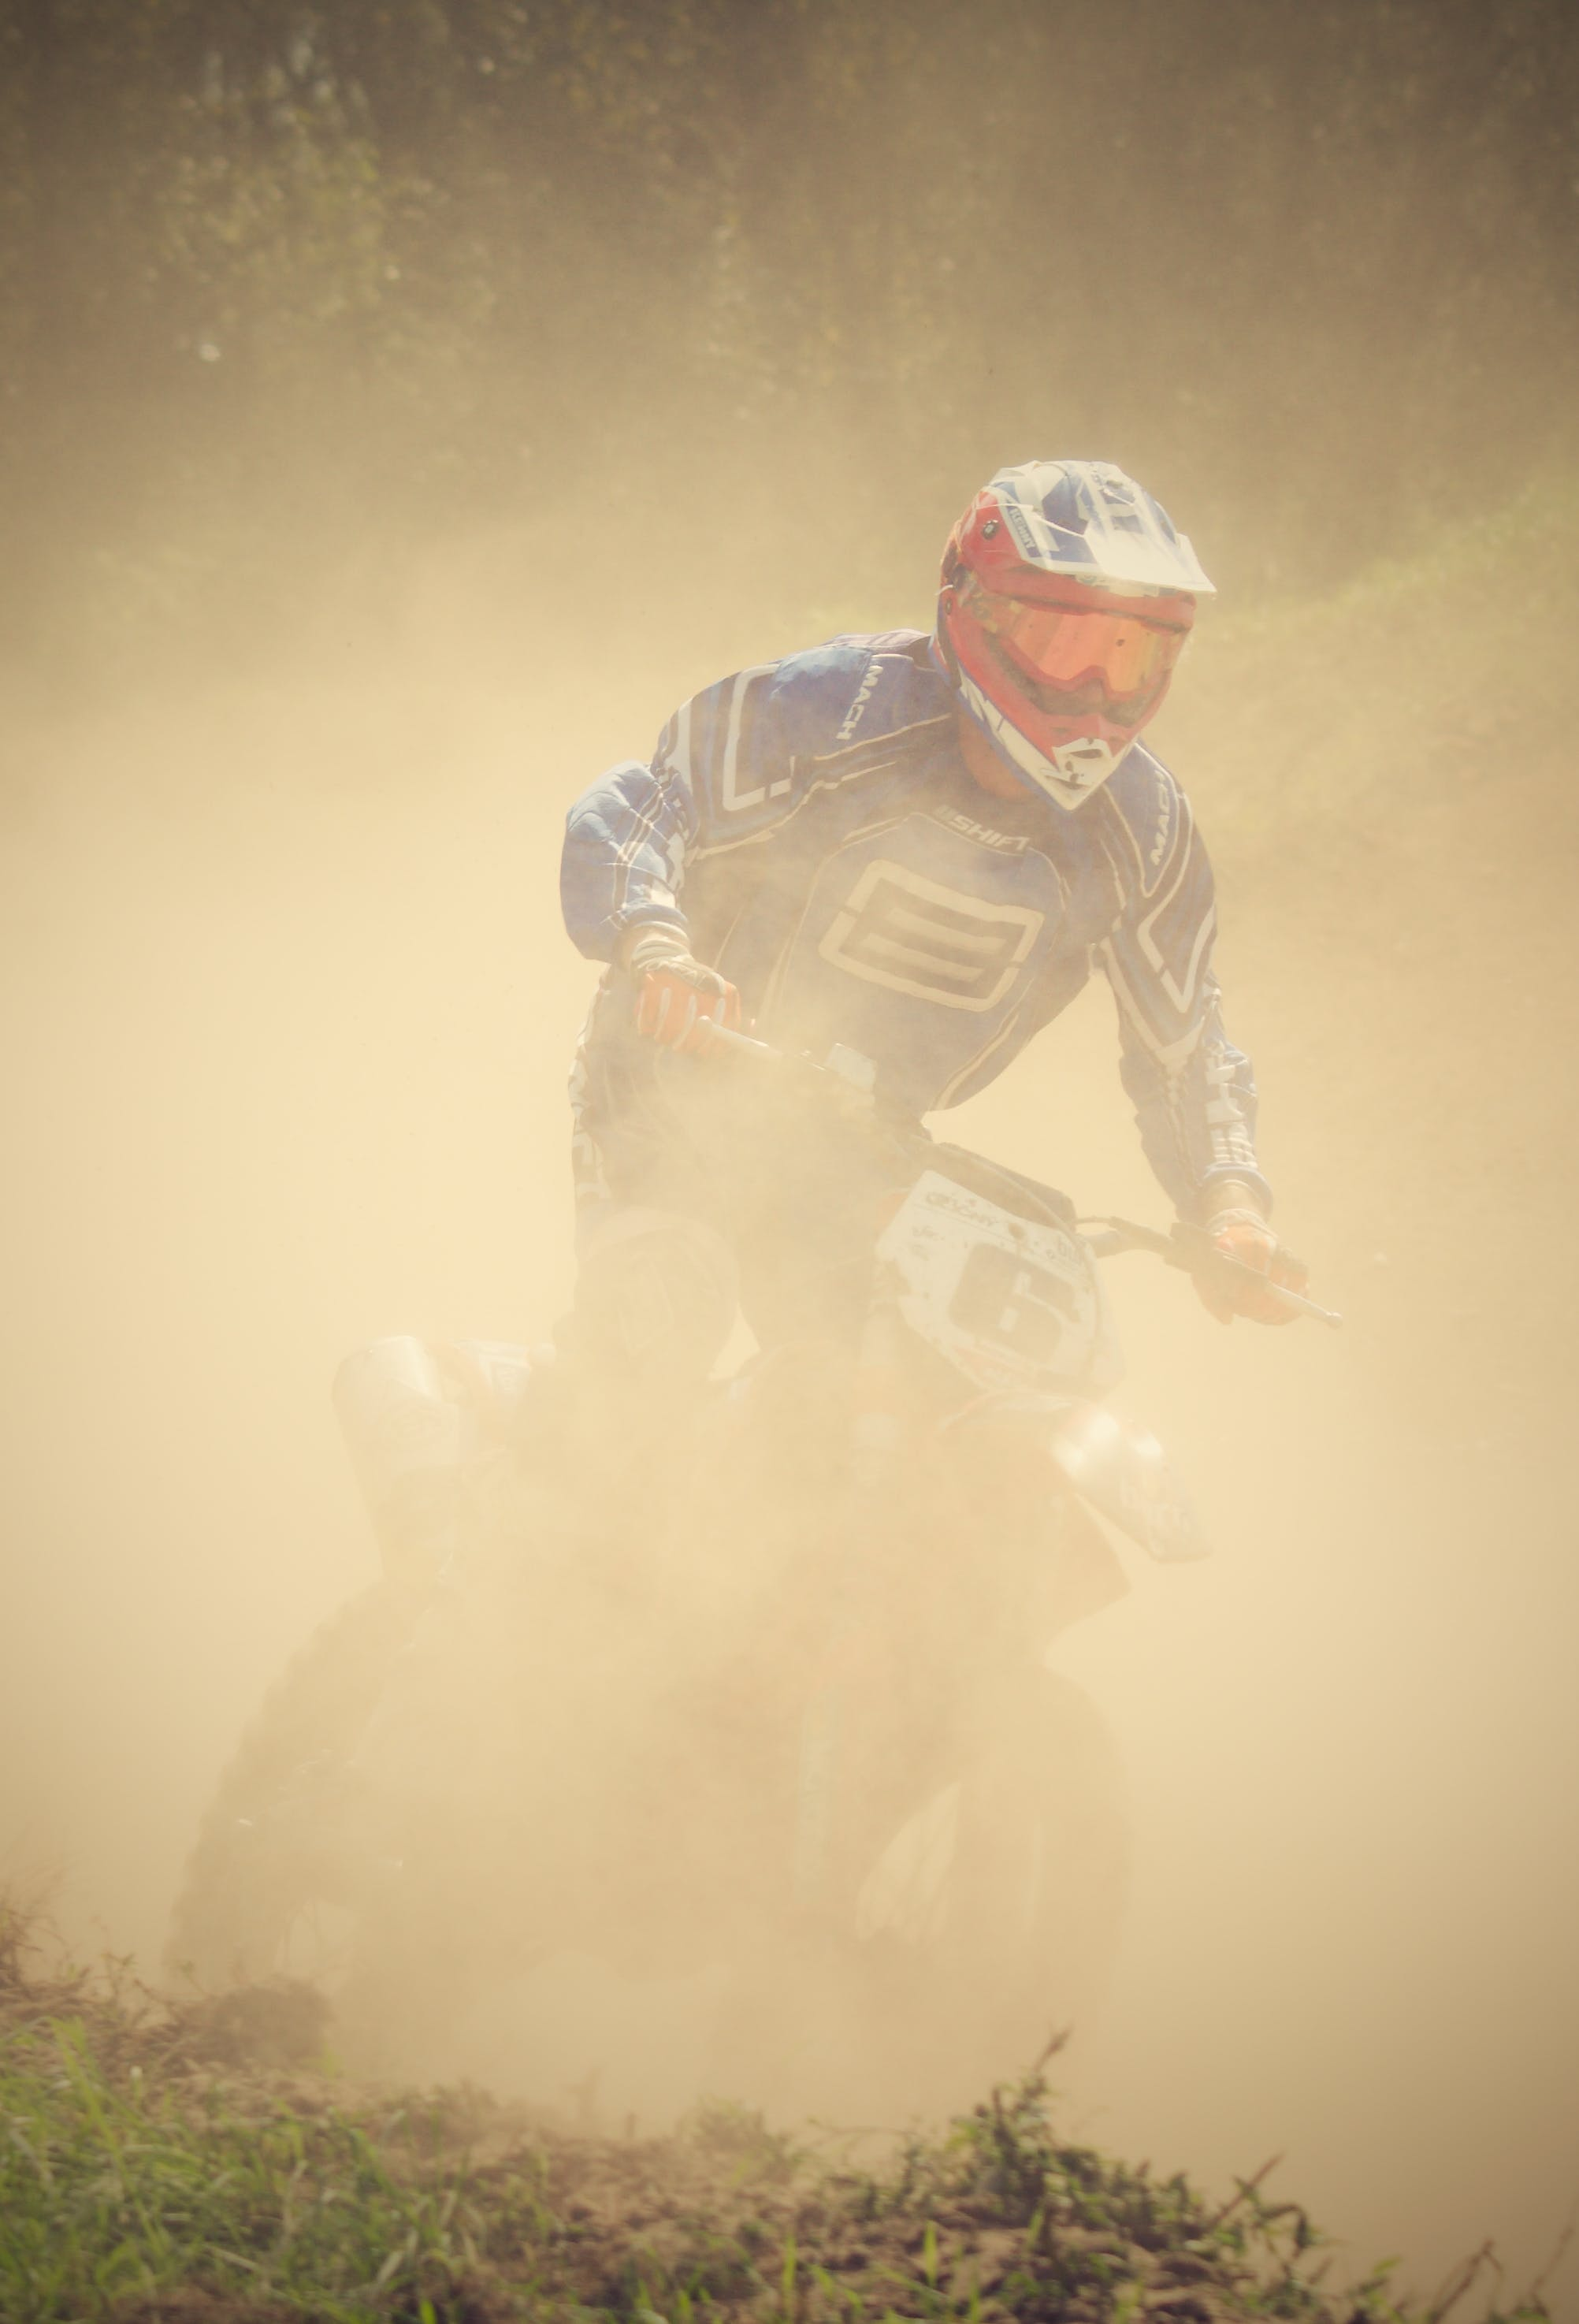 Free stock photo of bike rider, cross, dirtbiker, motocross